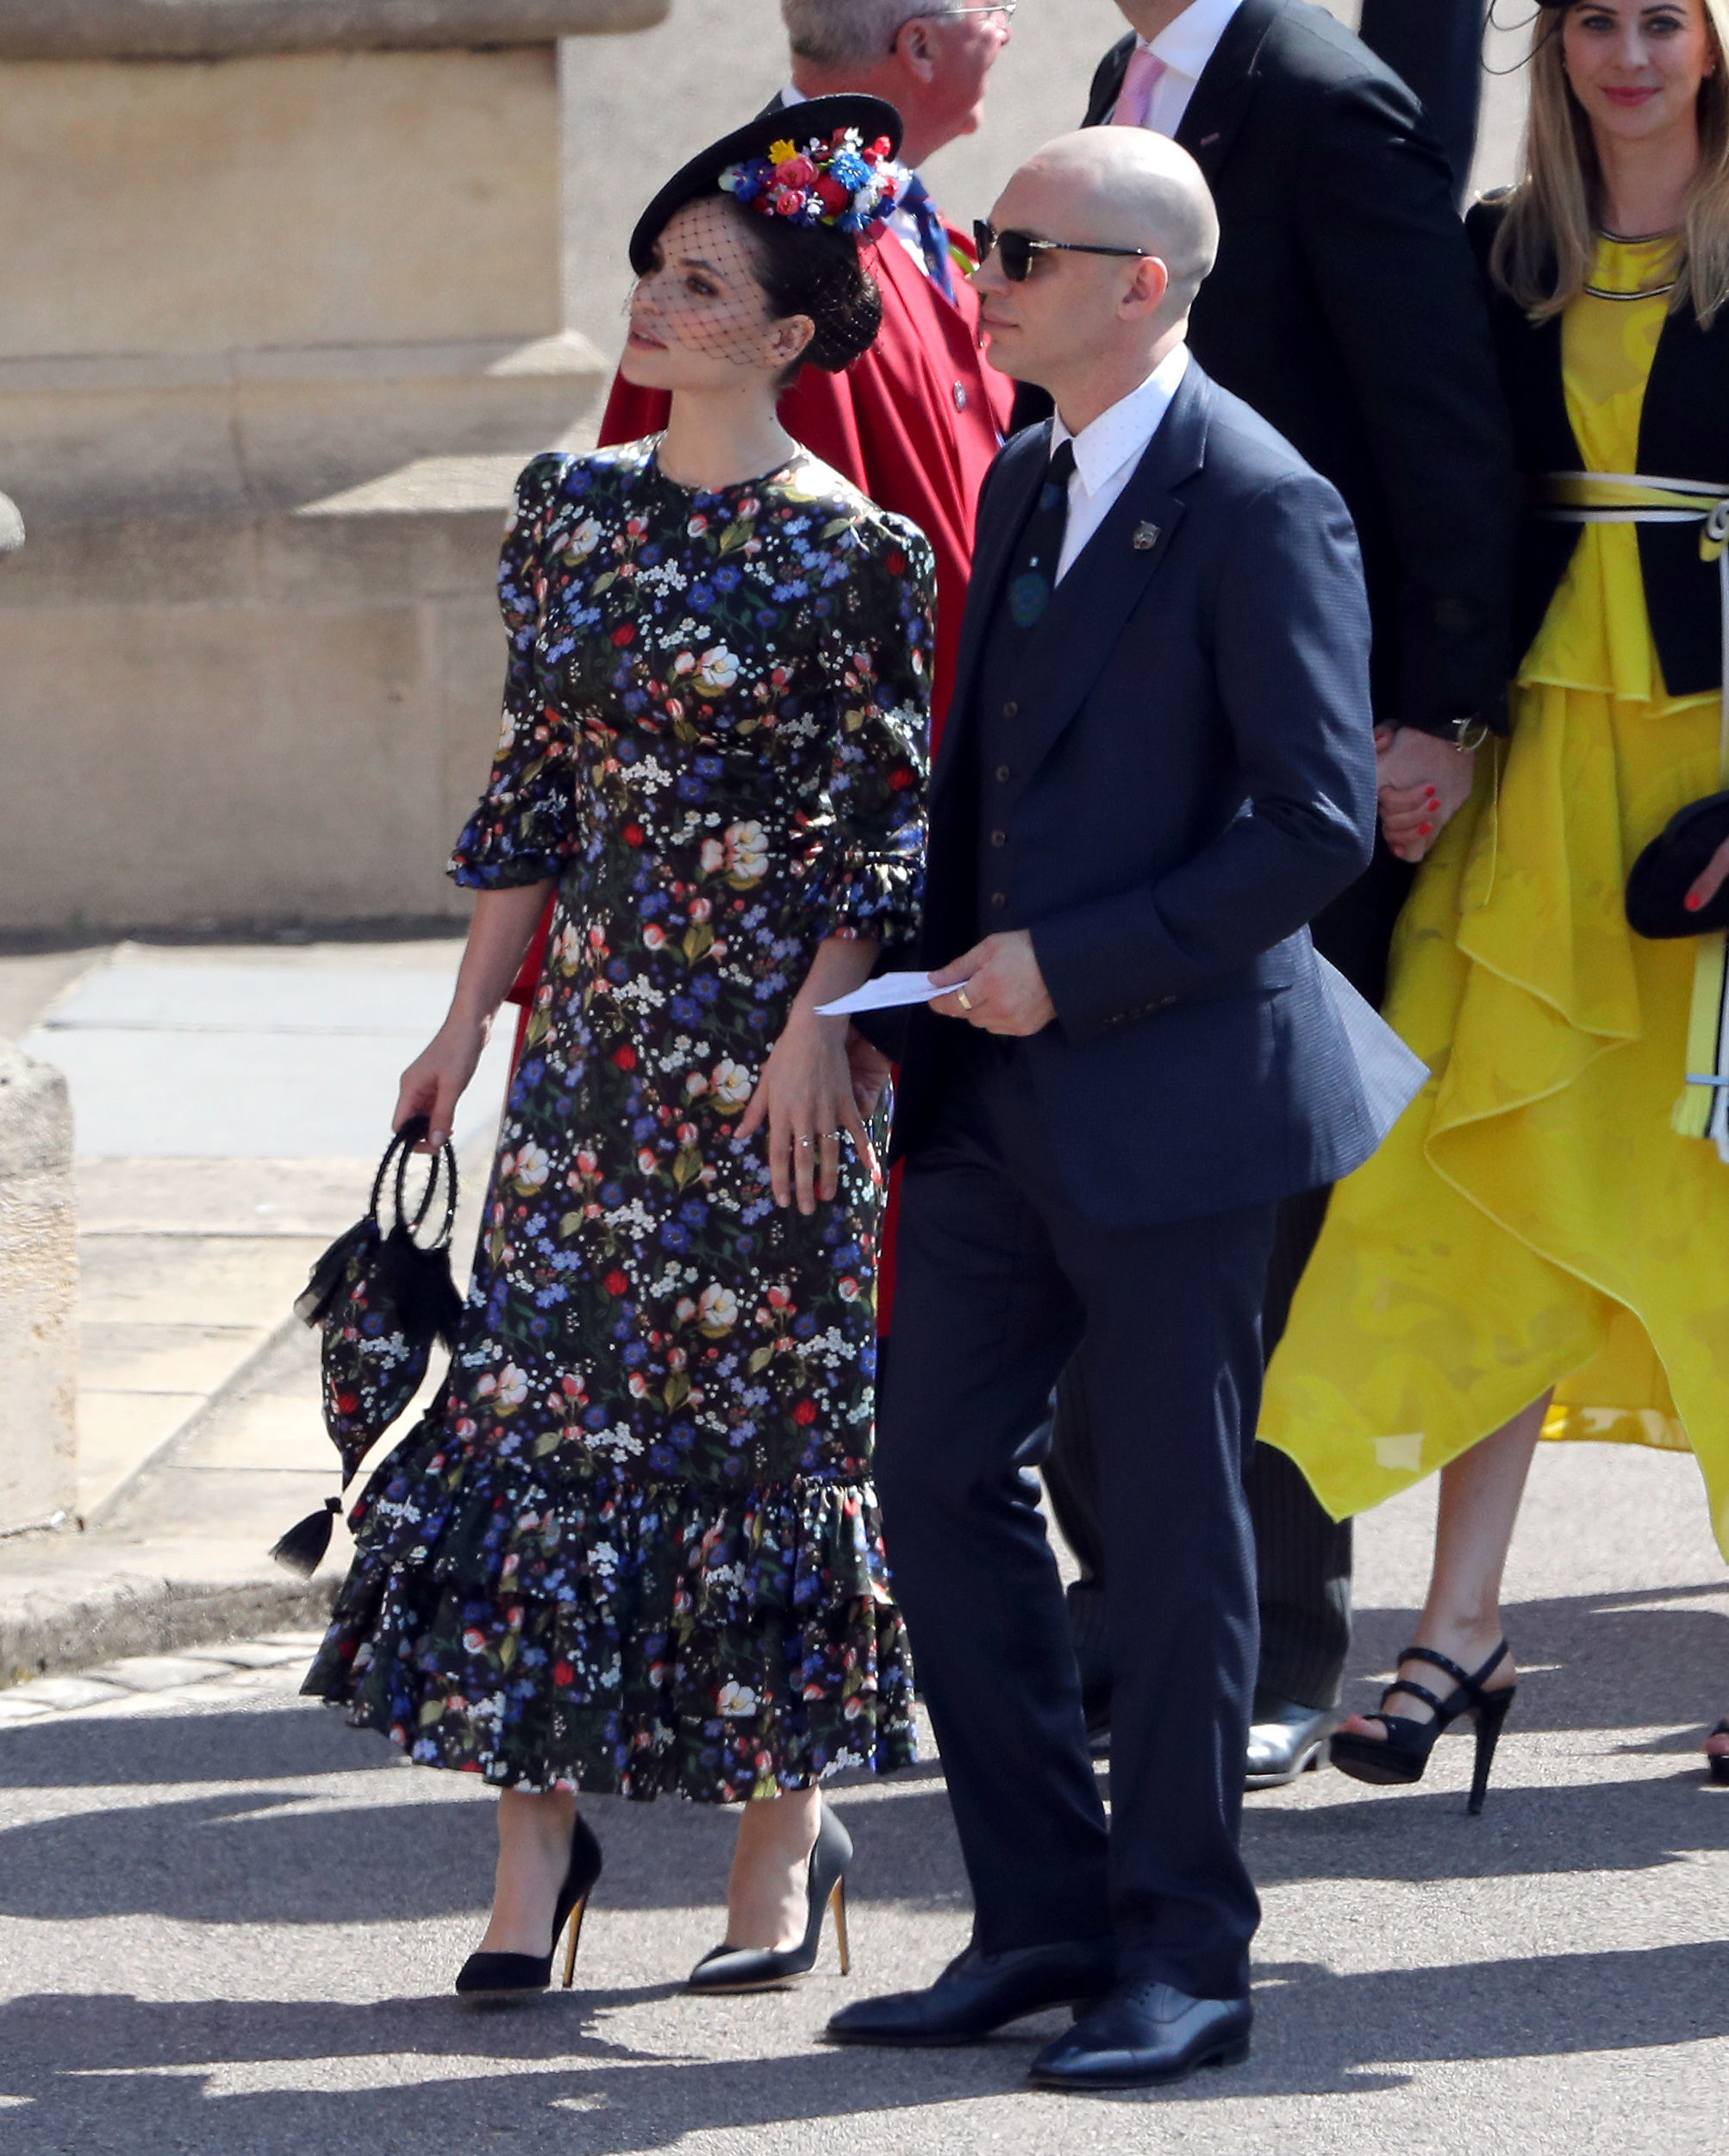 Tom Hardy and Charlotte Riley Royal Wedding 2018